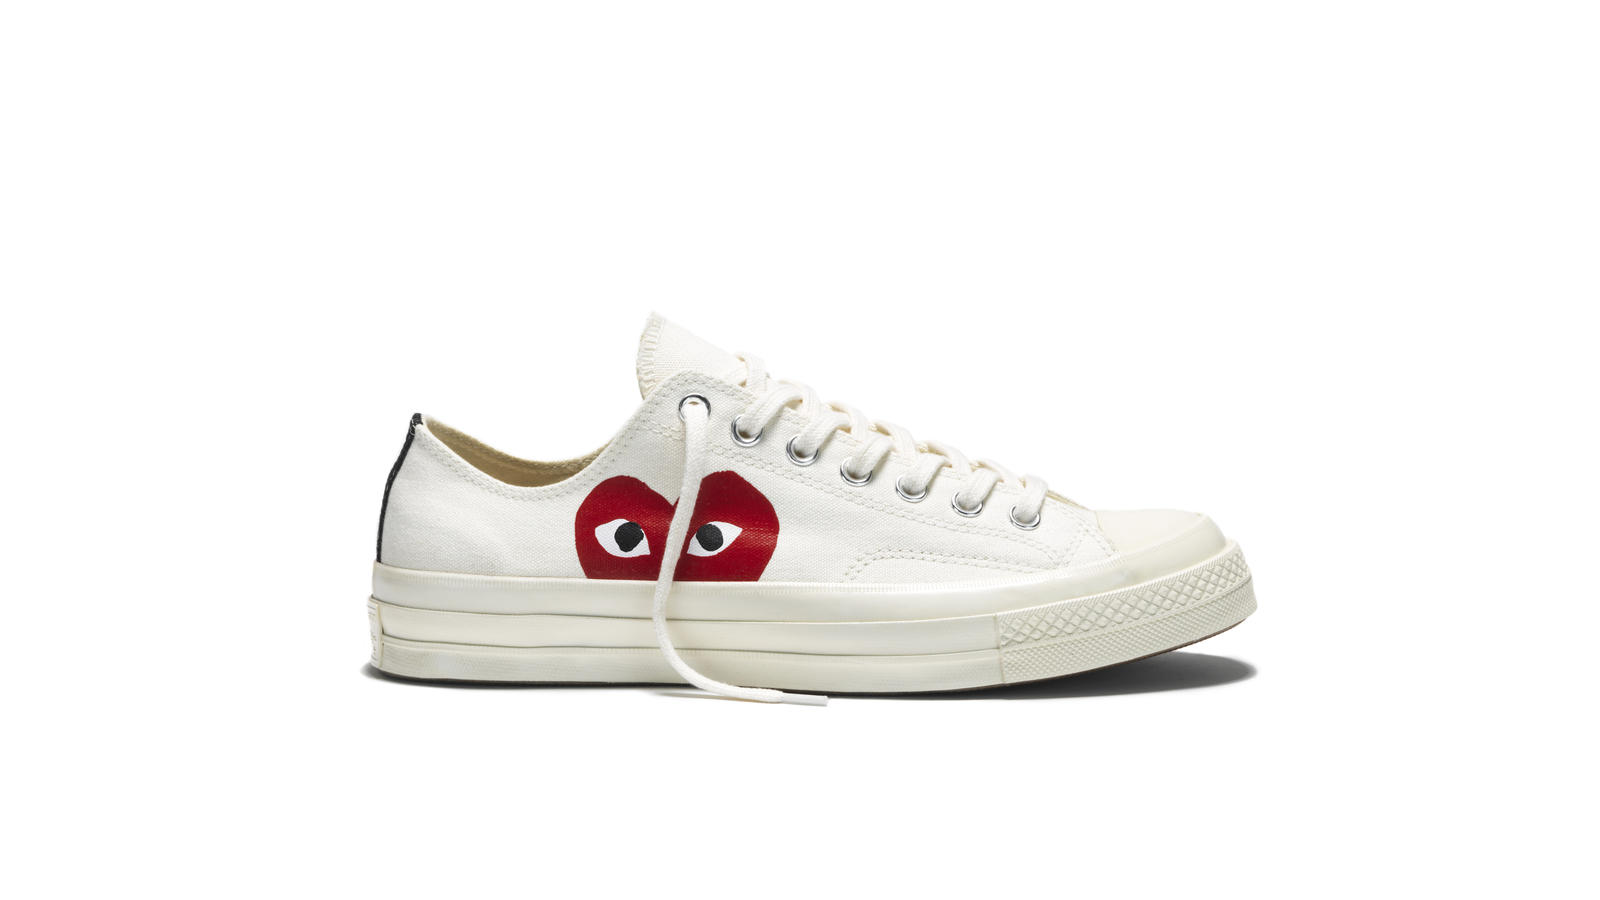 Today CONVERSE Inc Announces The Launch Of Converse Chuck Taylor All Star 70 PLAY COMME Des GARCONS Sneaker Collection Brands Fourth